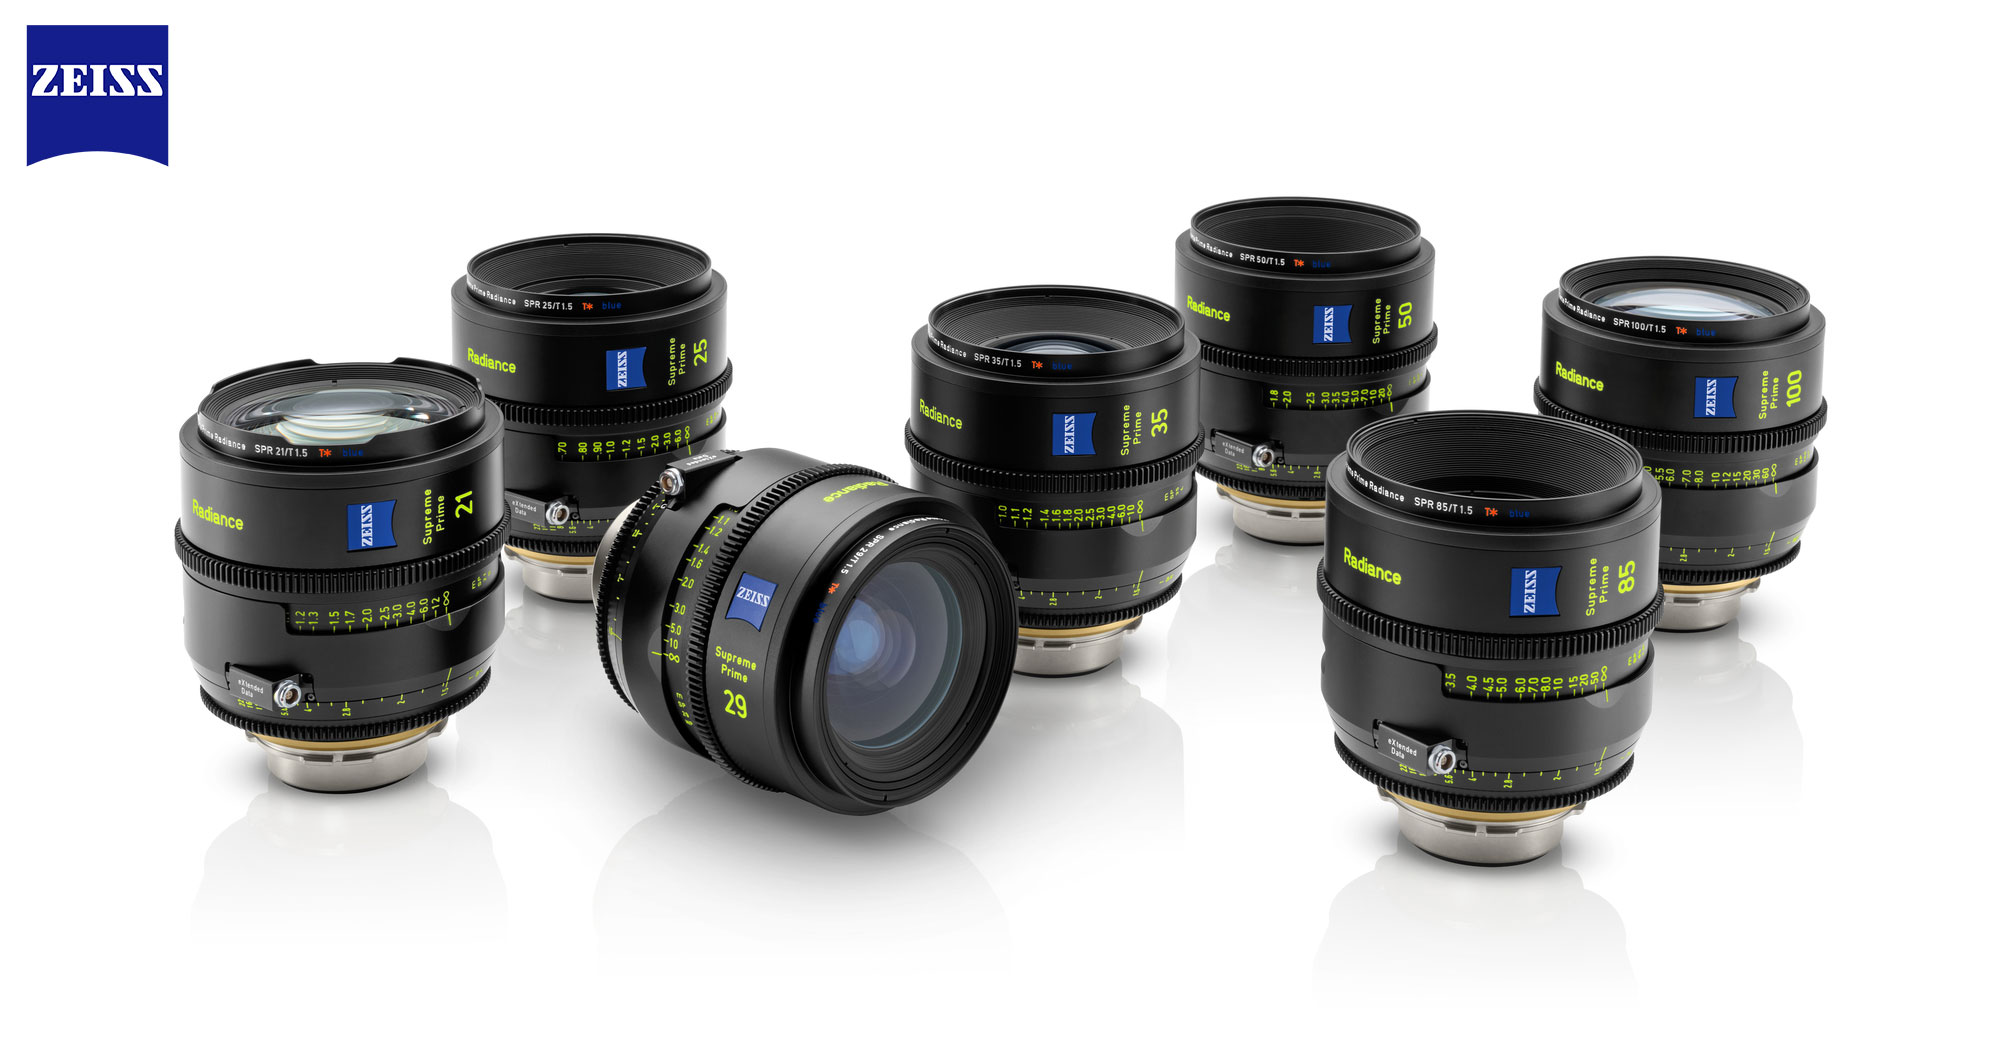 NEWS: ZEISS Unveils New Supreme Prime Radiance Lenses